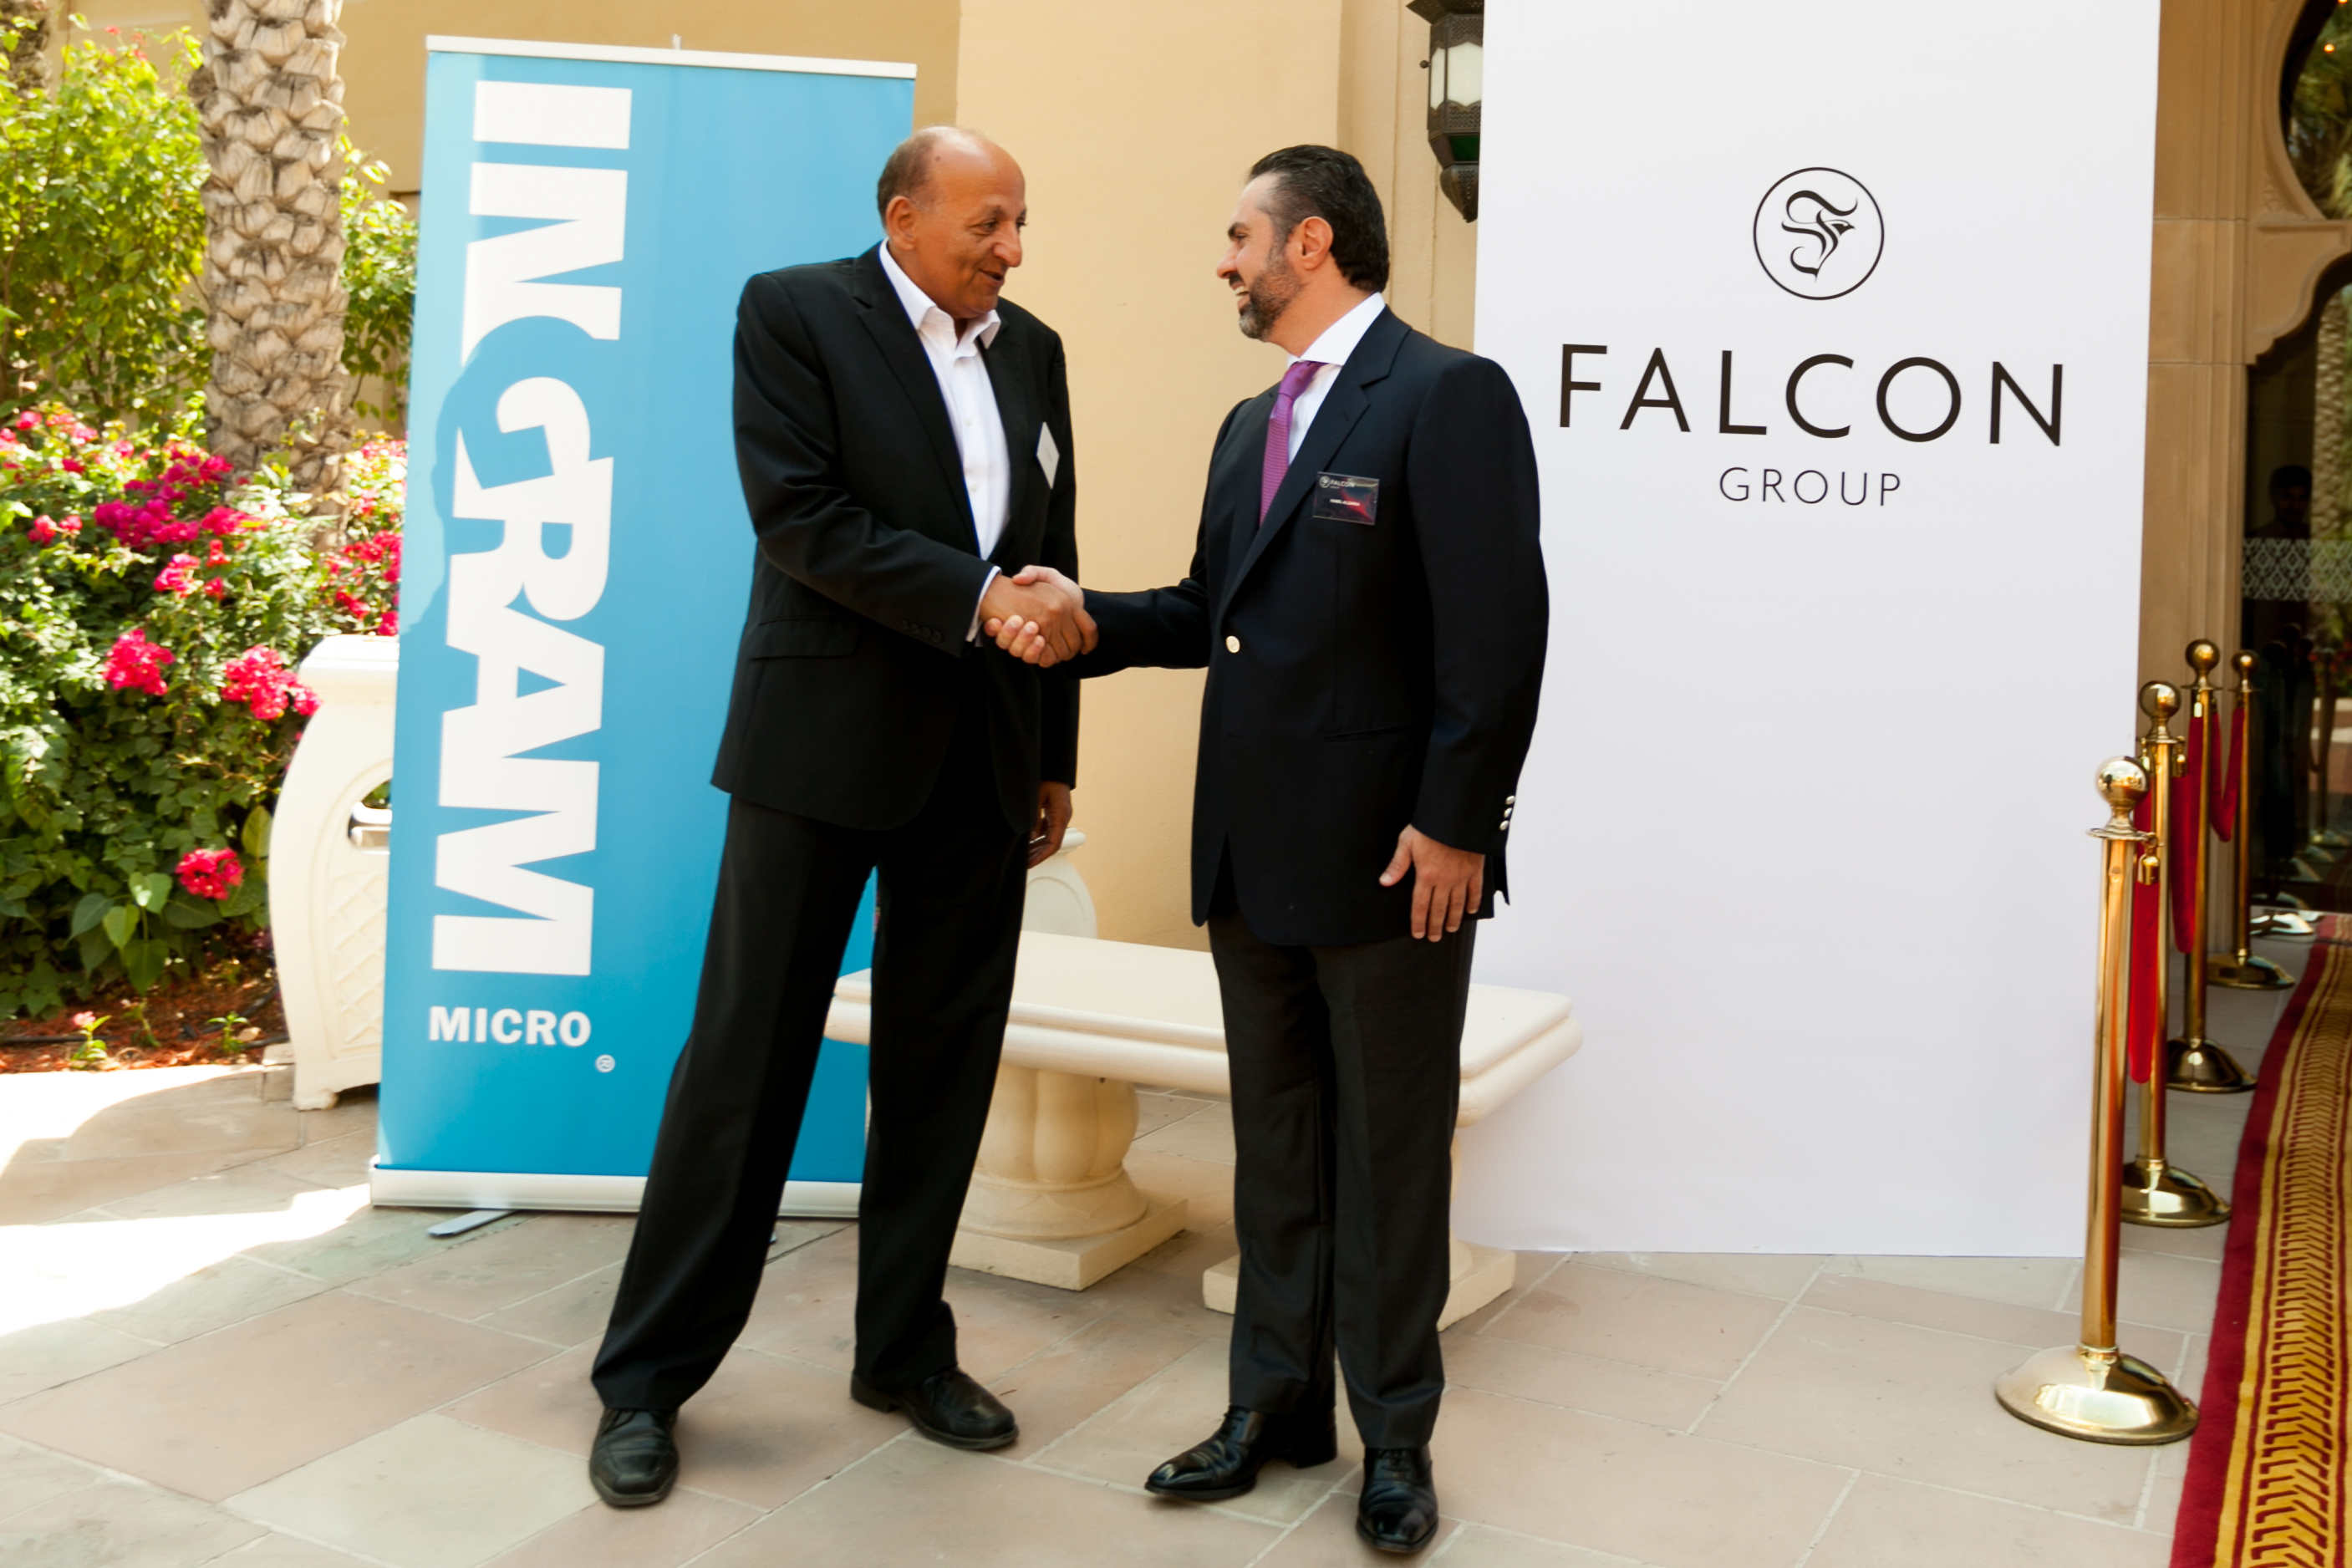 News & Events - Falcon Group